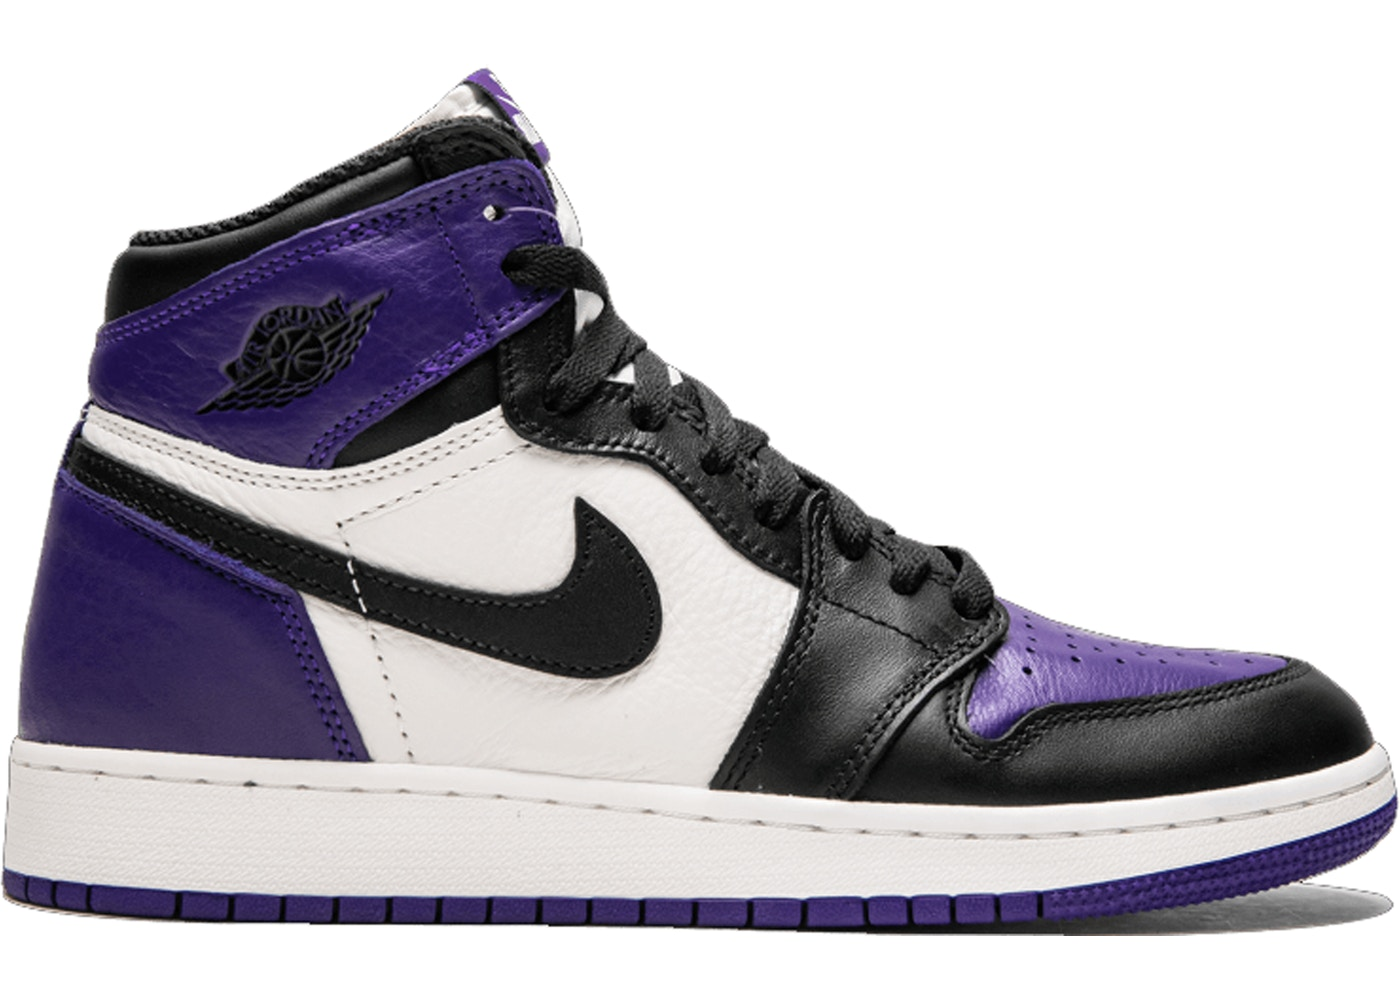 68d4522e9e1 Jordan 1 Retro High Court Purple (GS)